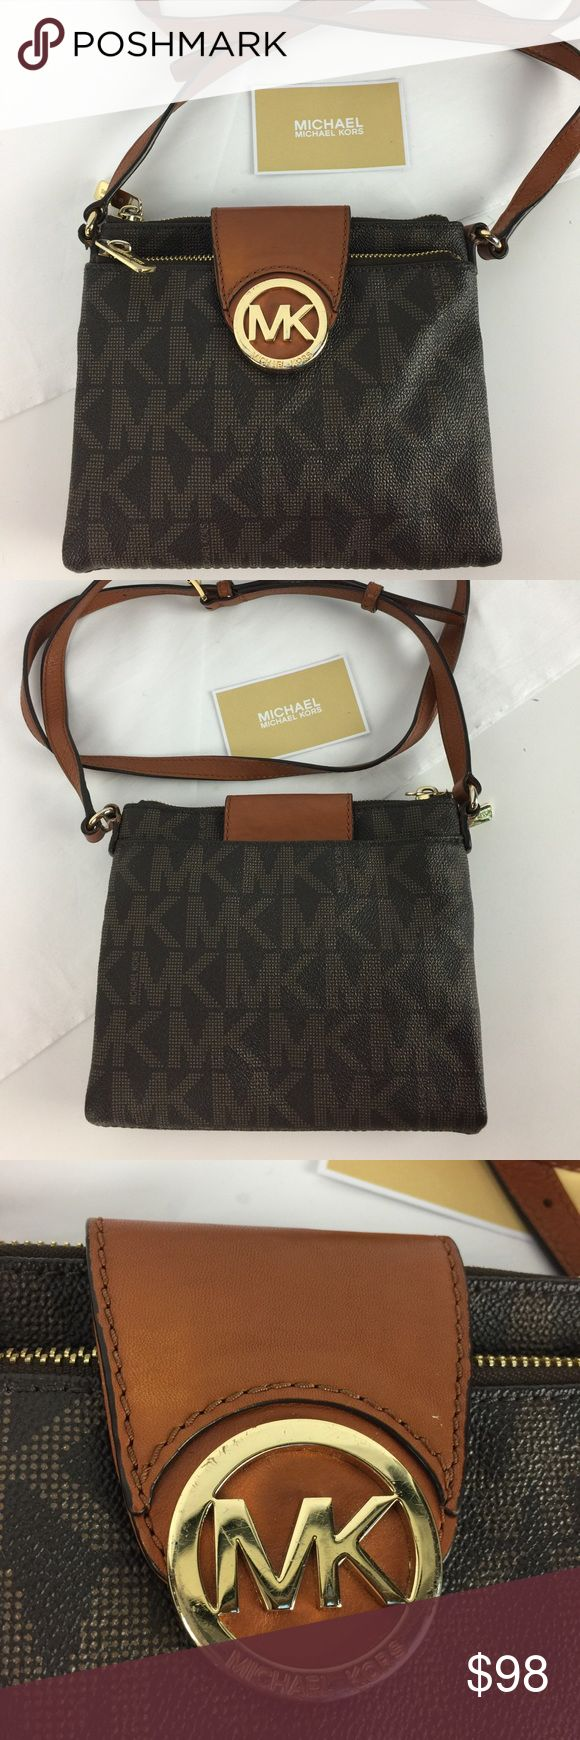 """Michael Kors Fulton Large Crossbody Bag Condition: Gently Used. Some signs of wear on hardware. Otherwise very good    This Michael Kors Fulton Crossbody features a top zip and magnetic snap closure, adjustable shoulder strap, an all over MK logo print, gold-tone hardware and logo plaque, interior zip and two slip pockets, six credit card slots and an ID holder. Measures 7.5"""" L x 1"""" D x 7"""" H.   Thank you for your interest! No Trades please. Michael Kors Bags Crossbody Bags"""